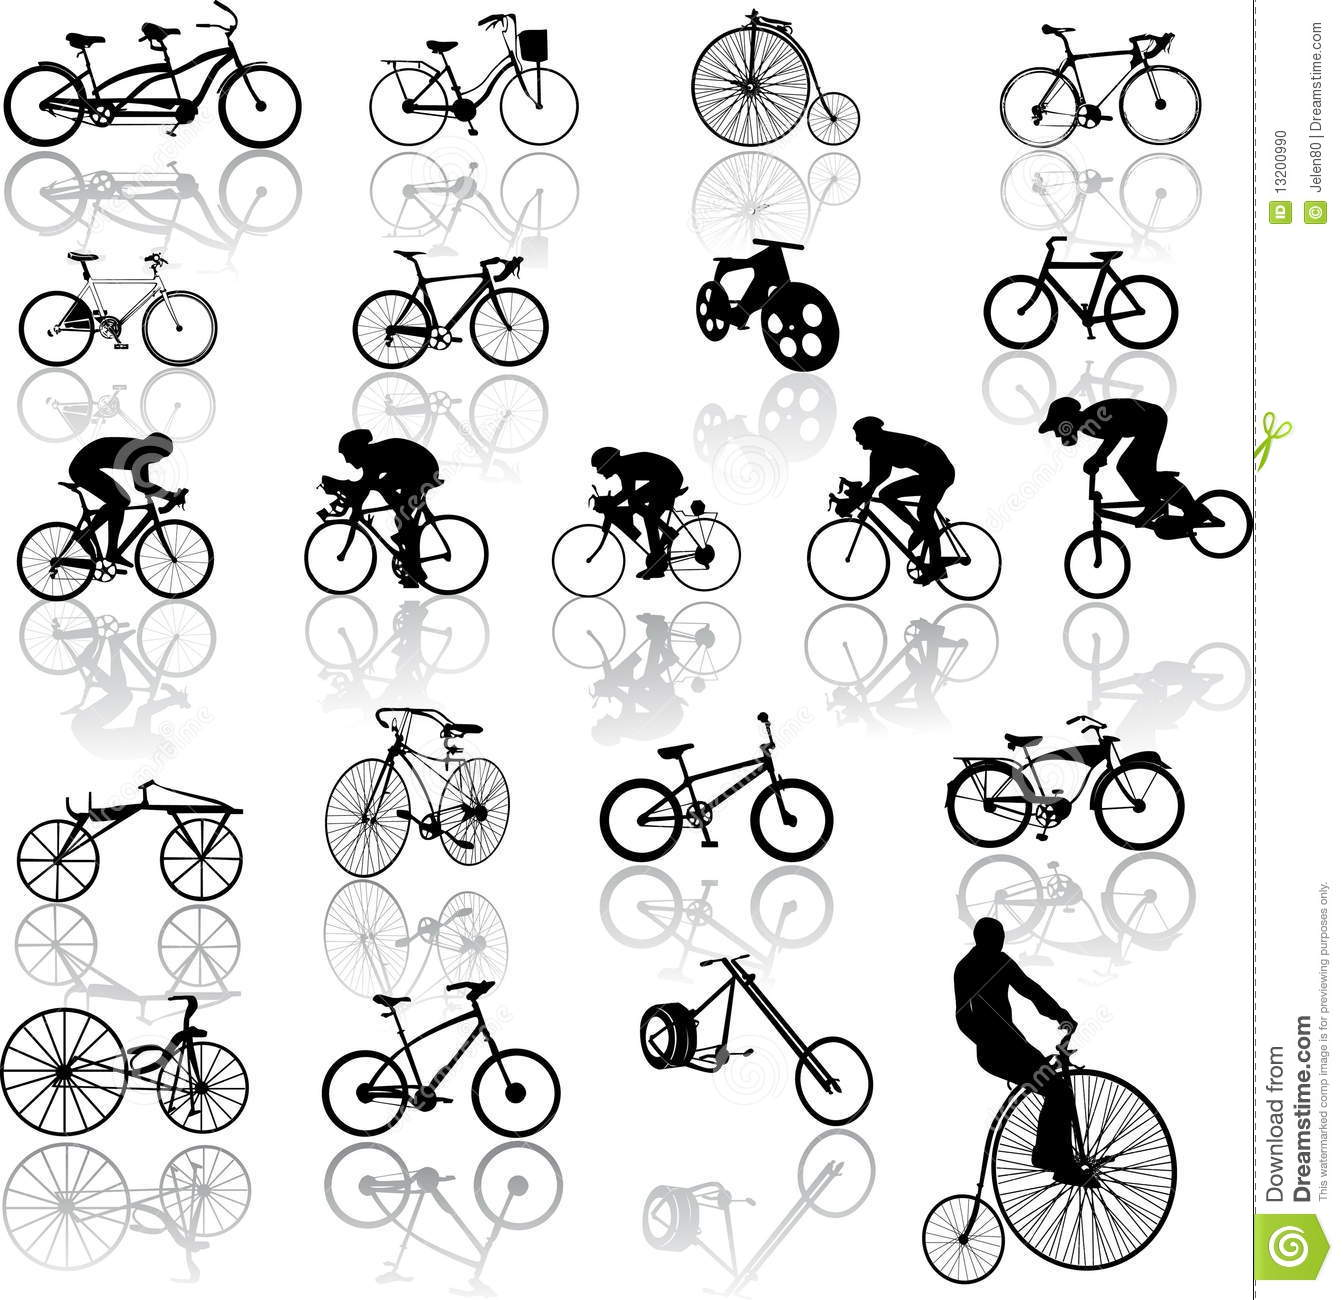 Vector Illustration Of Bicycles Stock Illustration